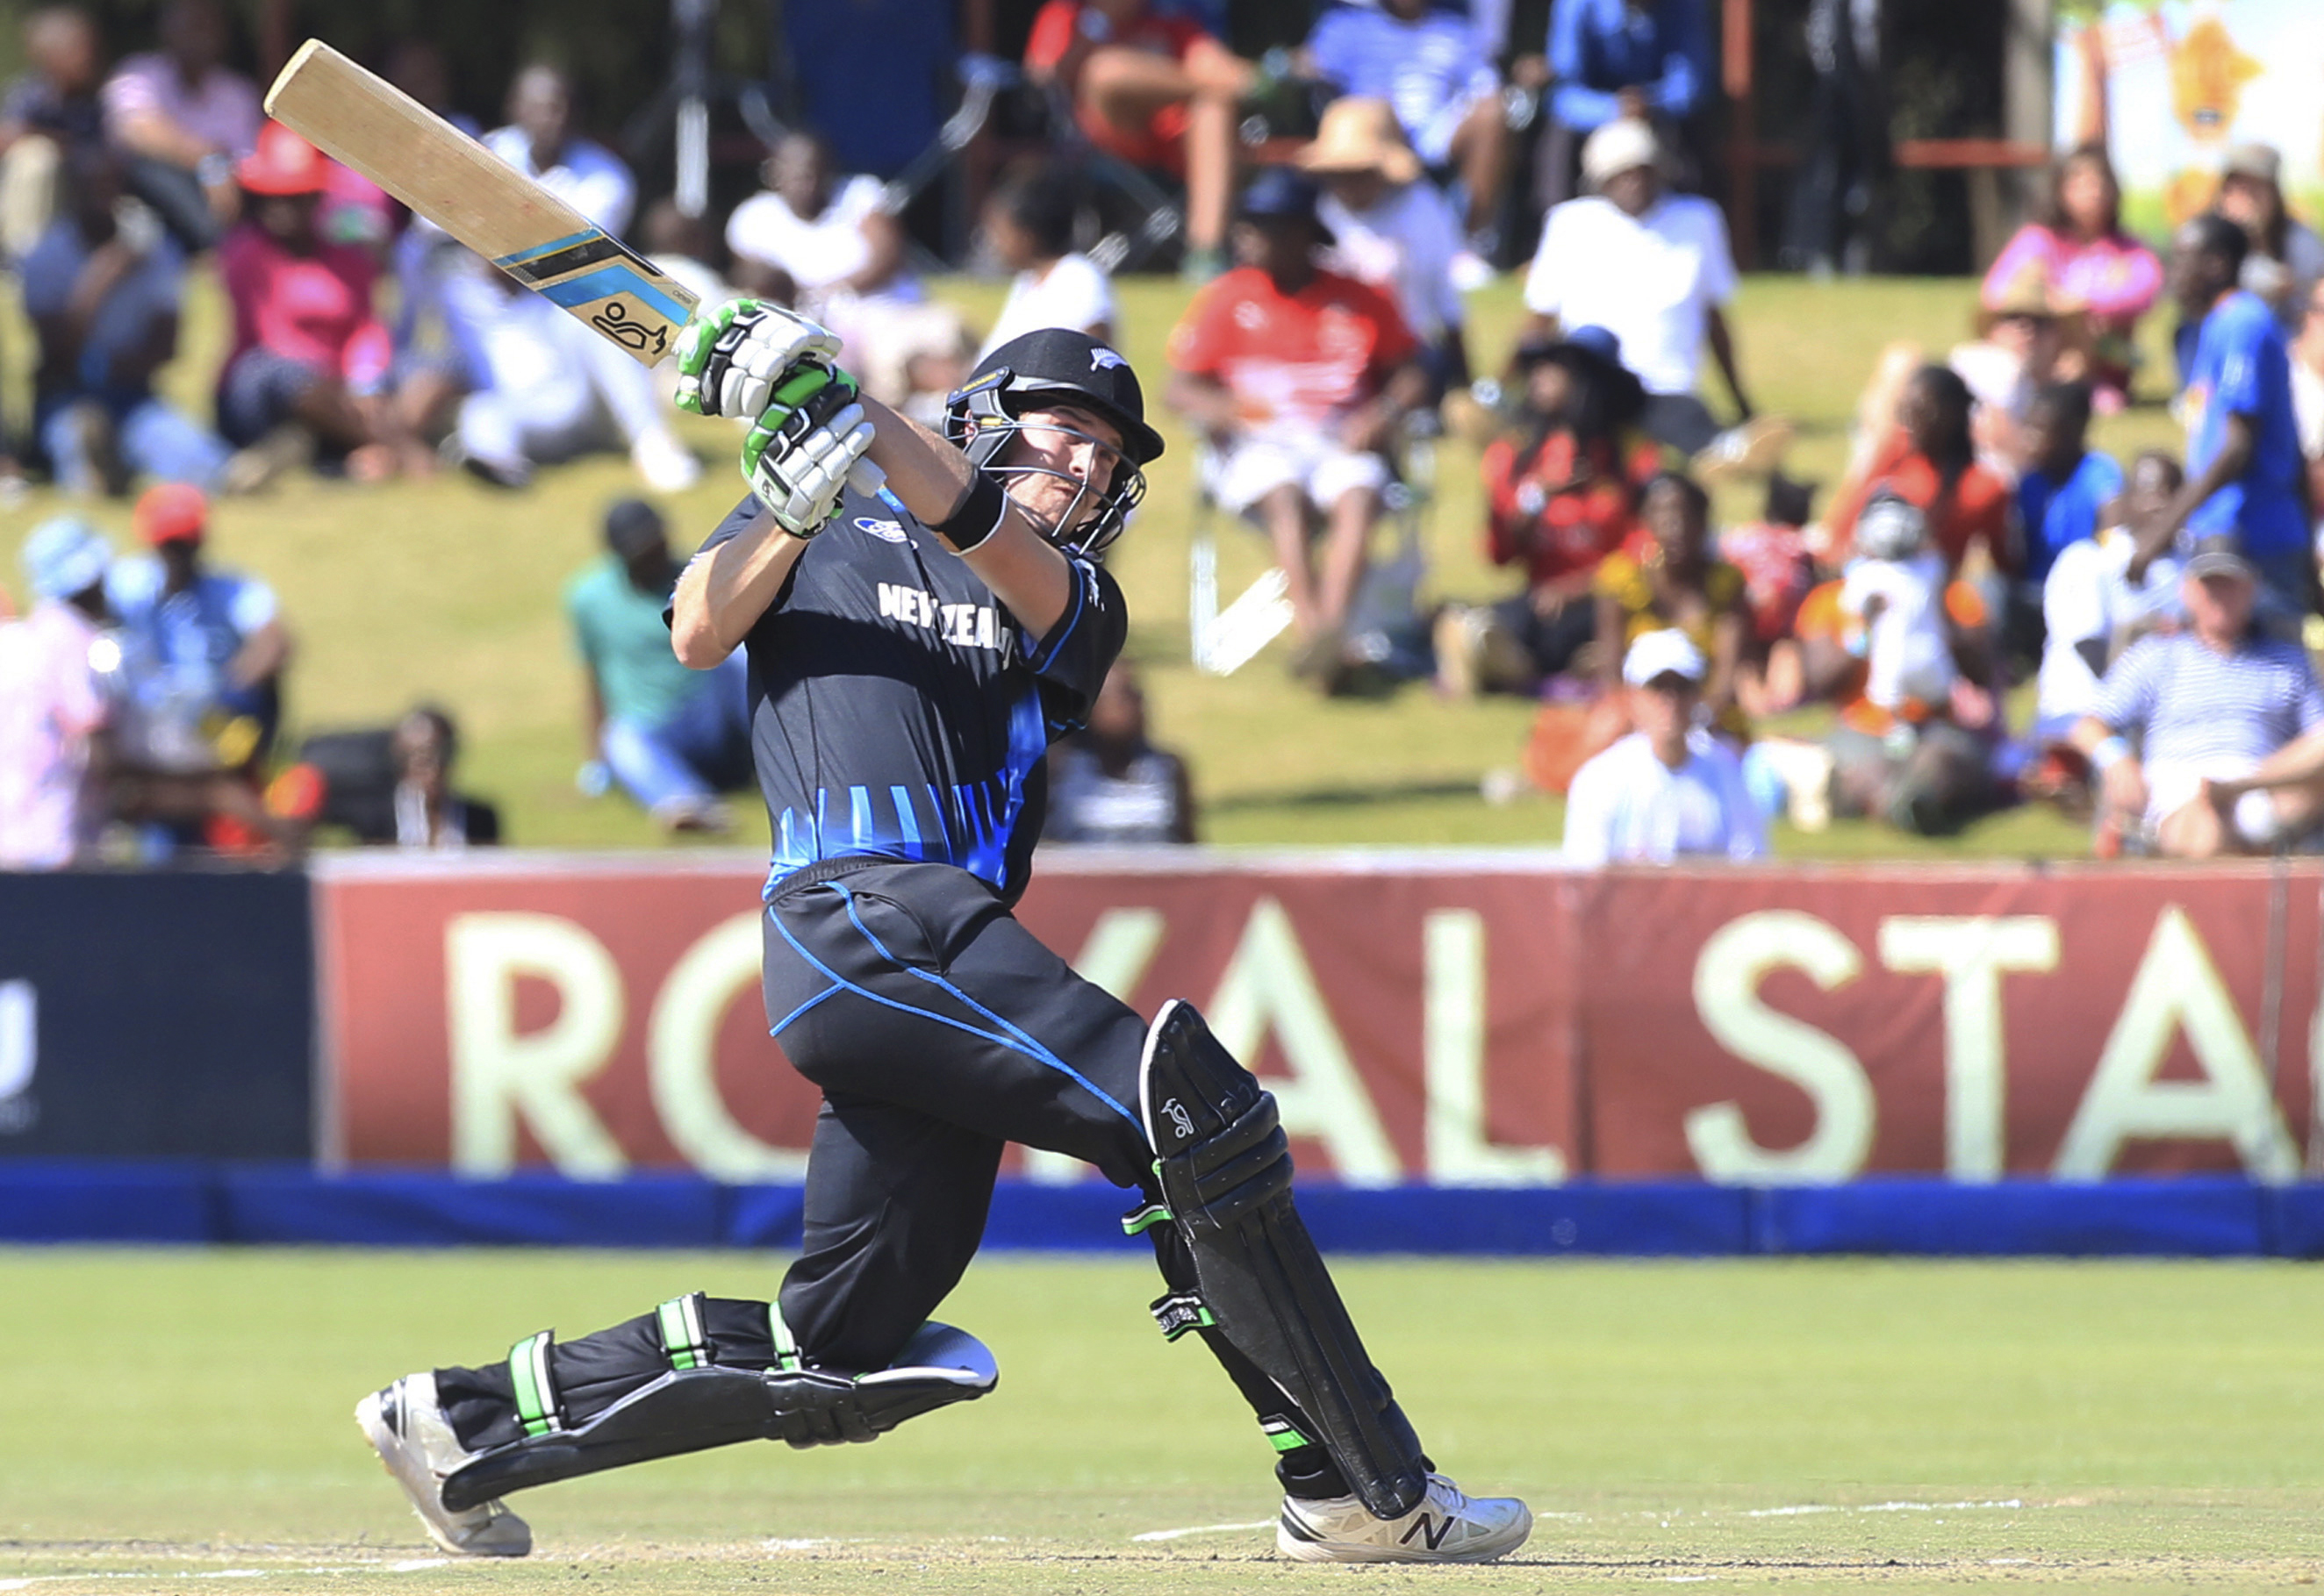 New Zealandu2019s George Worker plays a shot against Zimbabwe during their T20 match, in Harare, on Sunday. Photo: AP